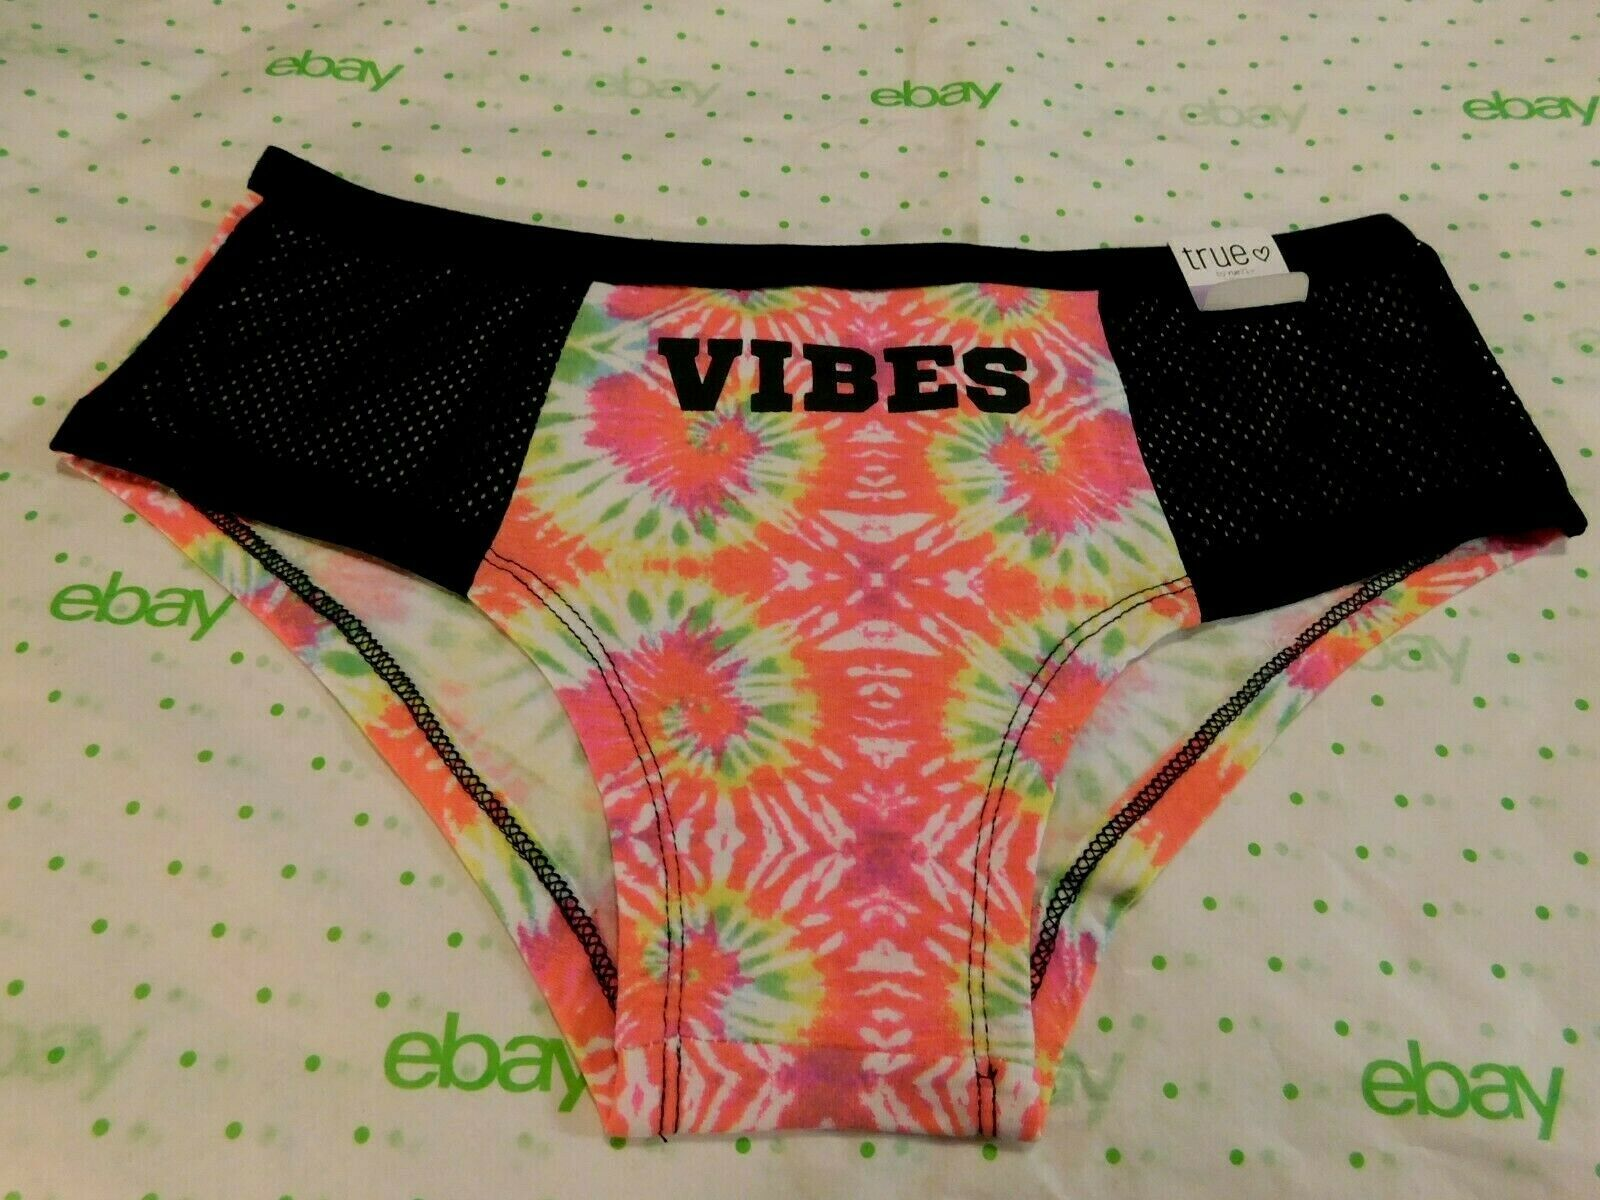 Primary image for Rue 21 Women's Cotton Boyshort Panties Size XS/SMALL Tie Dye Vibes Mesh Sides